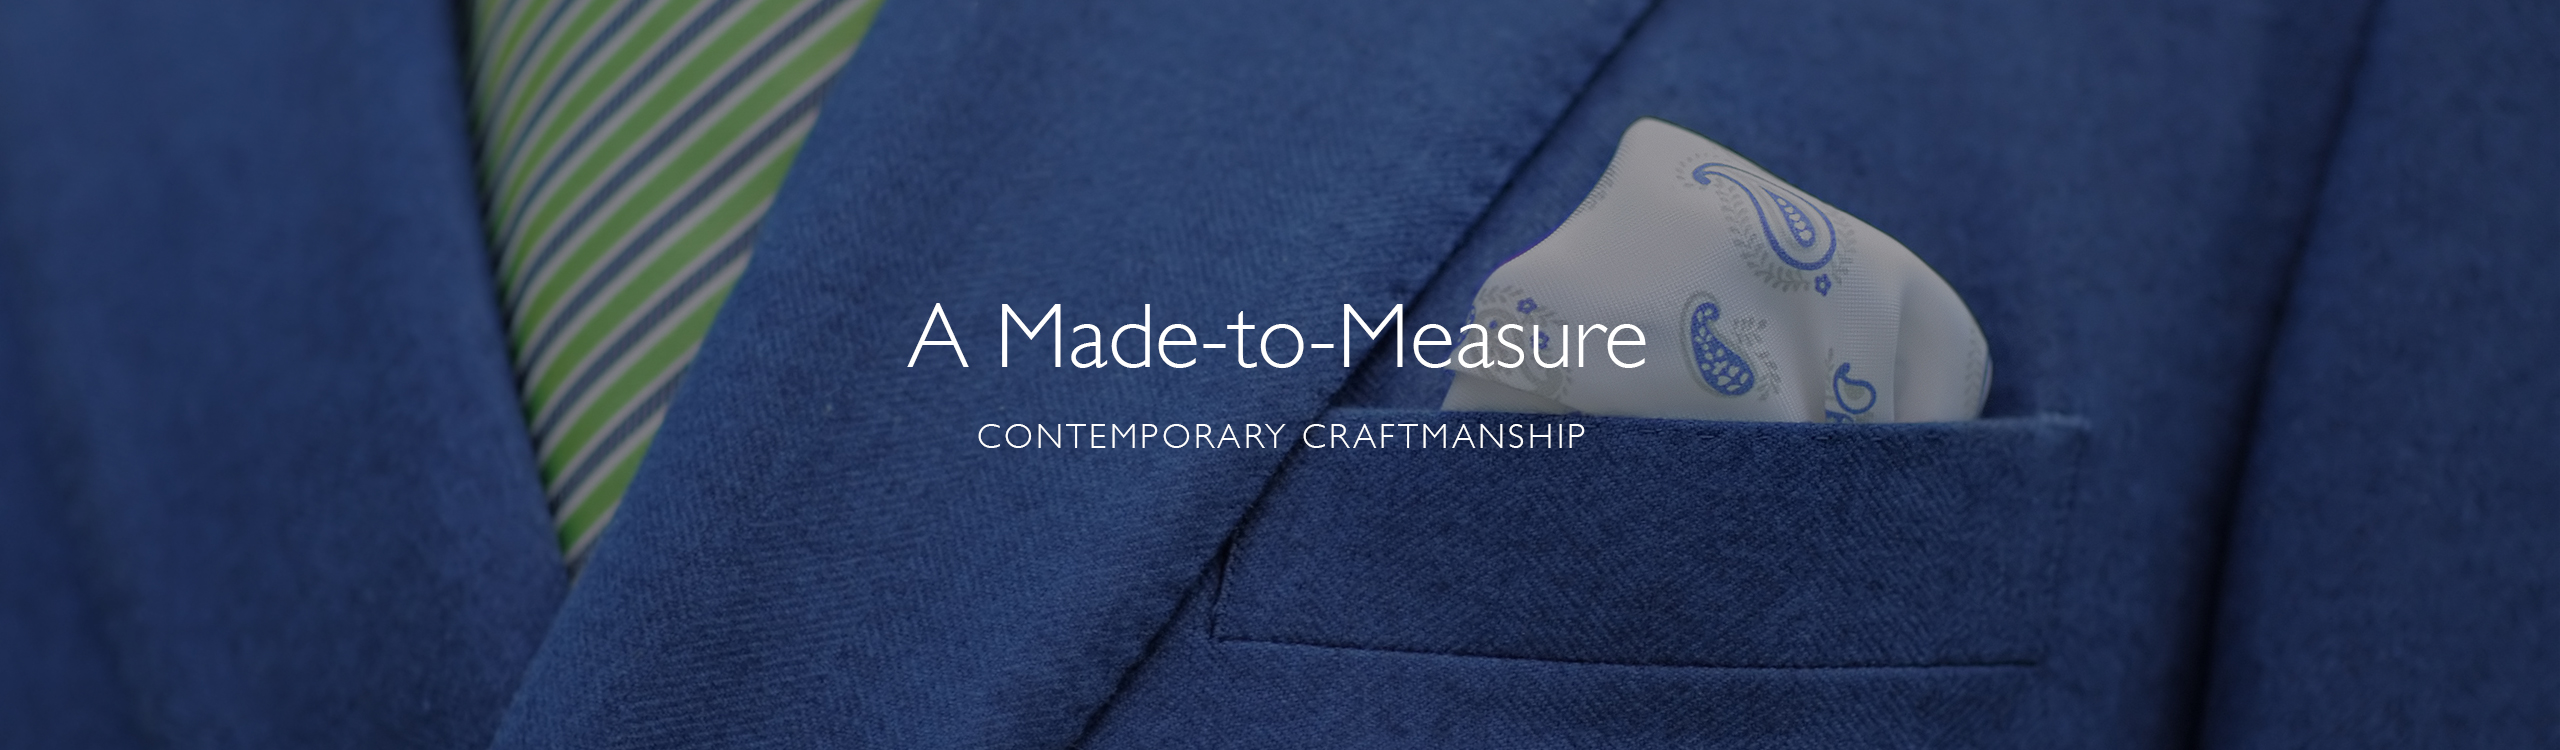 Andrew Black Made-to-Measure